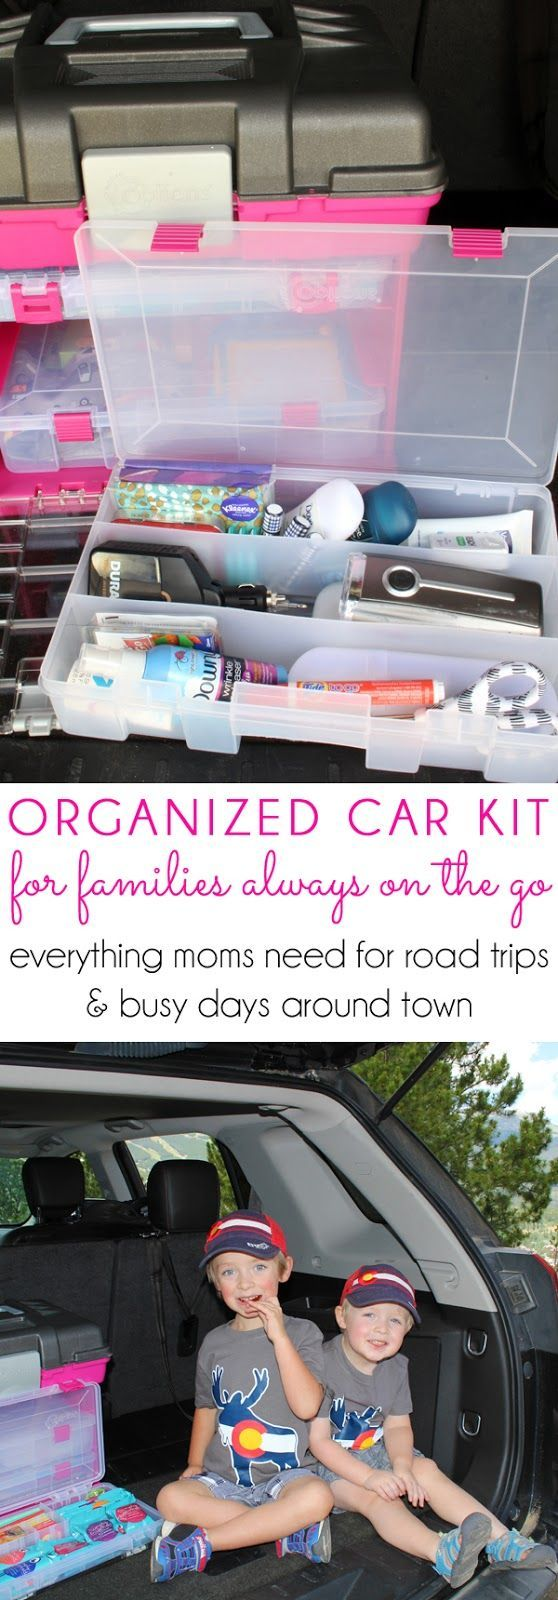 An ORGANIZED CAR KIT for families always on the go. DIY car organizing tips to always be prepared with first aid, snacks, tools, hygiene, clothing care, and entertainment. The perfect car organizing hack with everything moms need for road trips and busy d